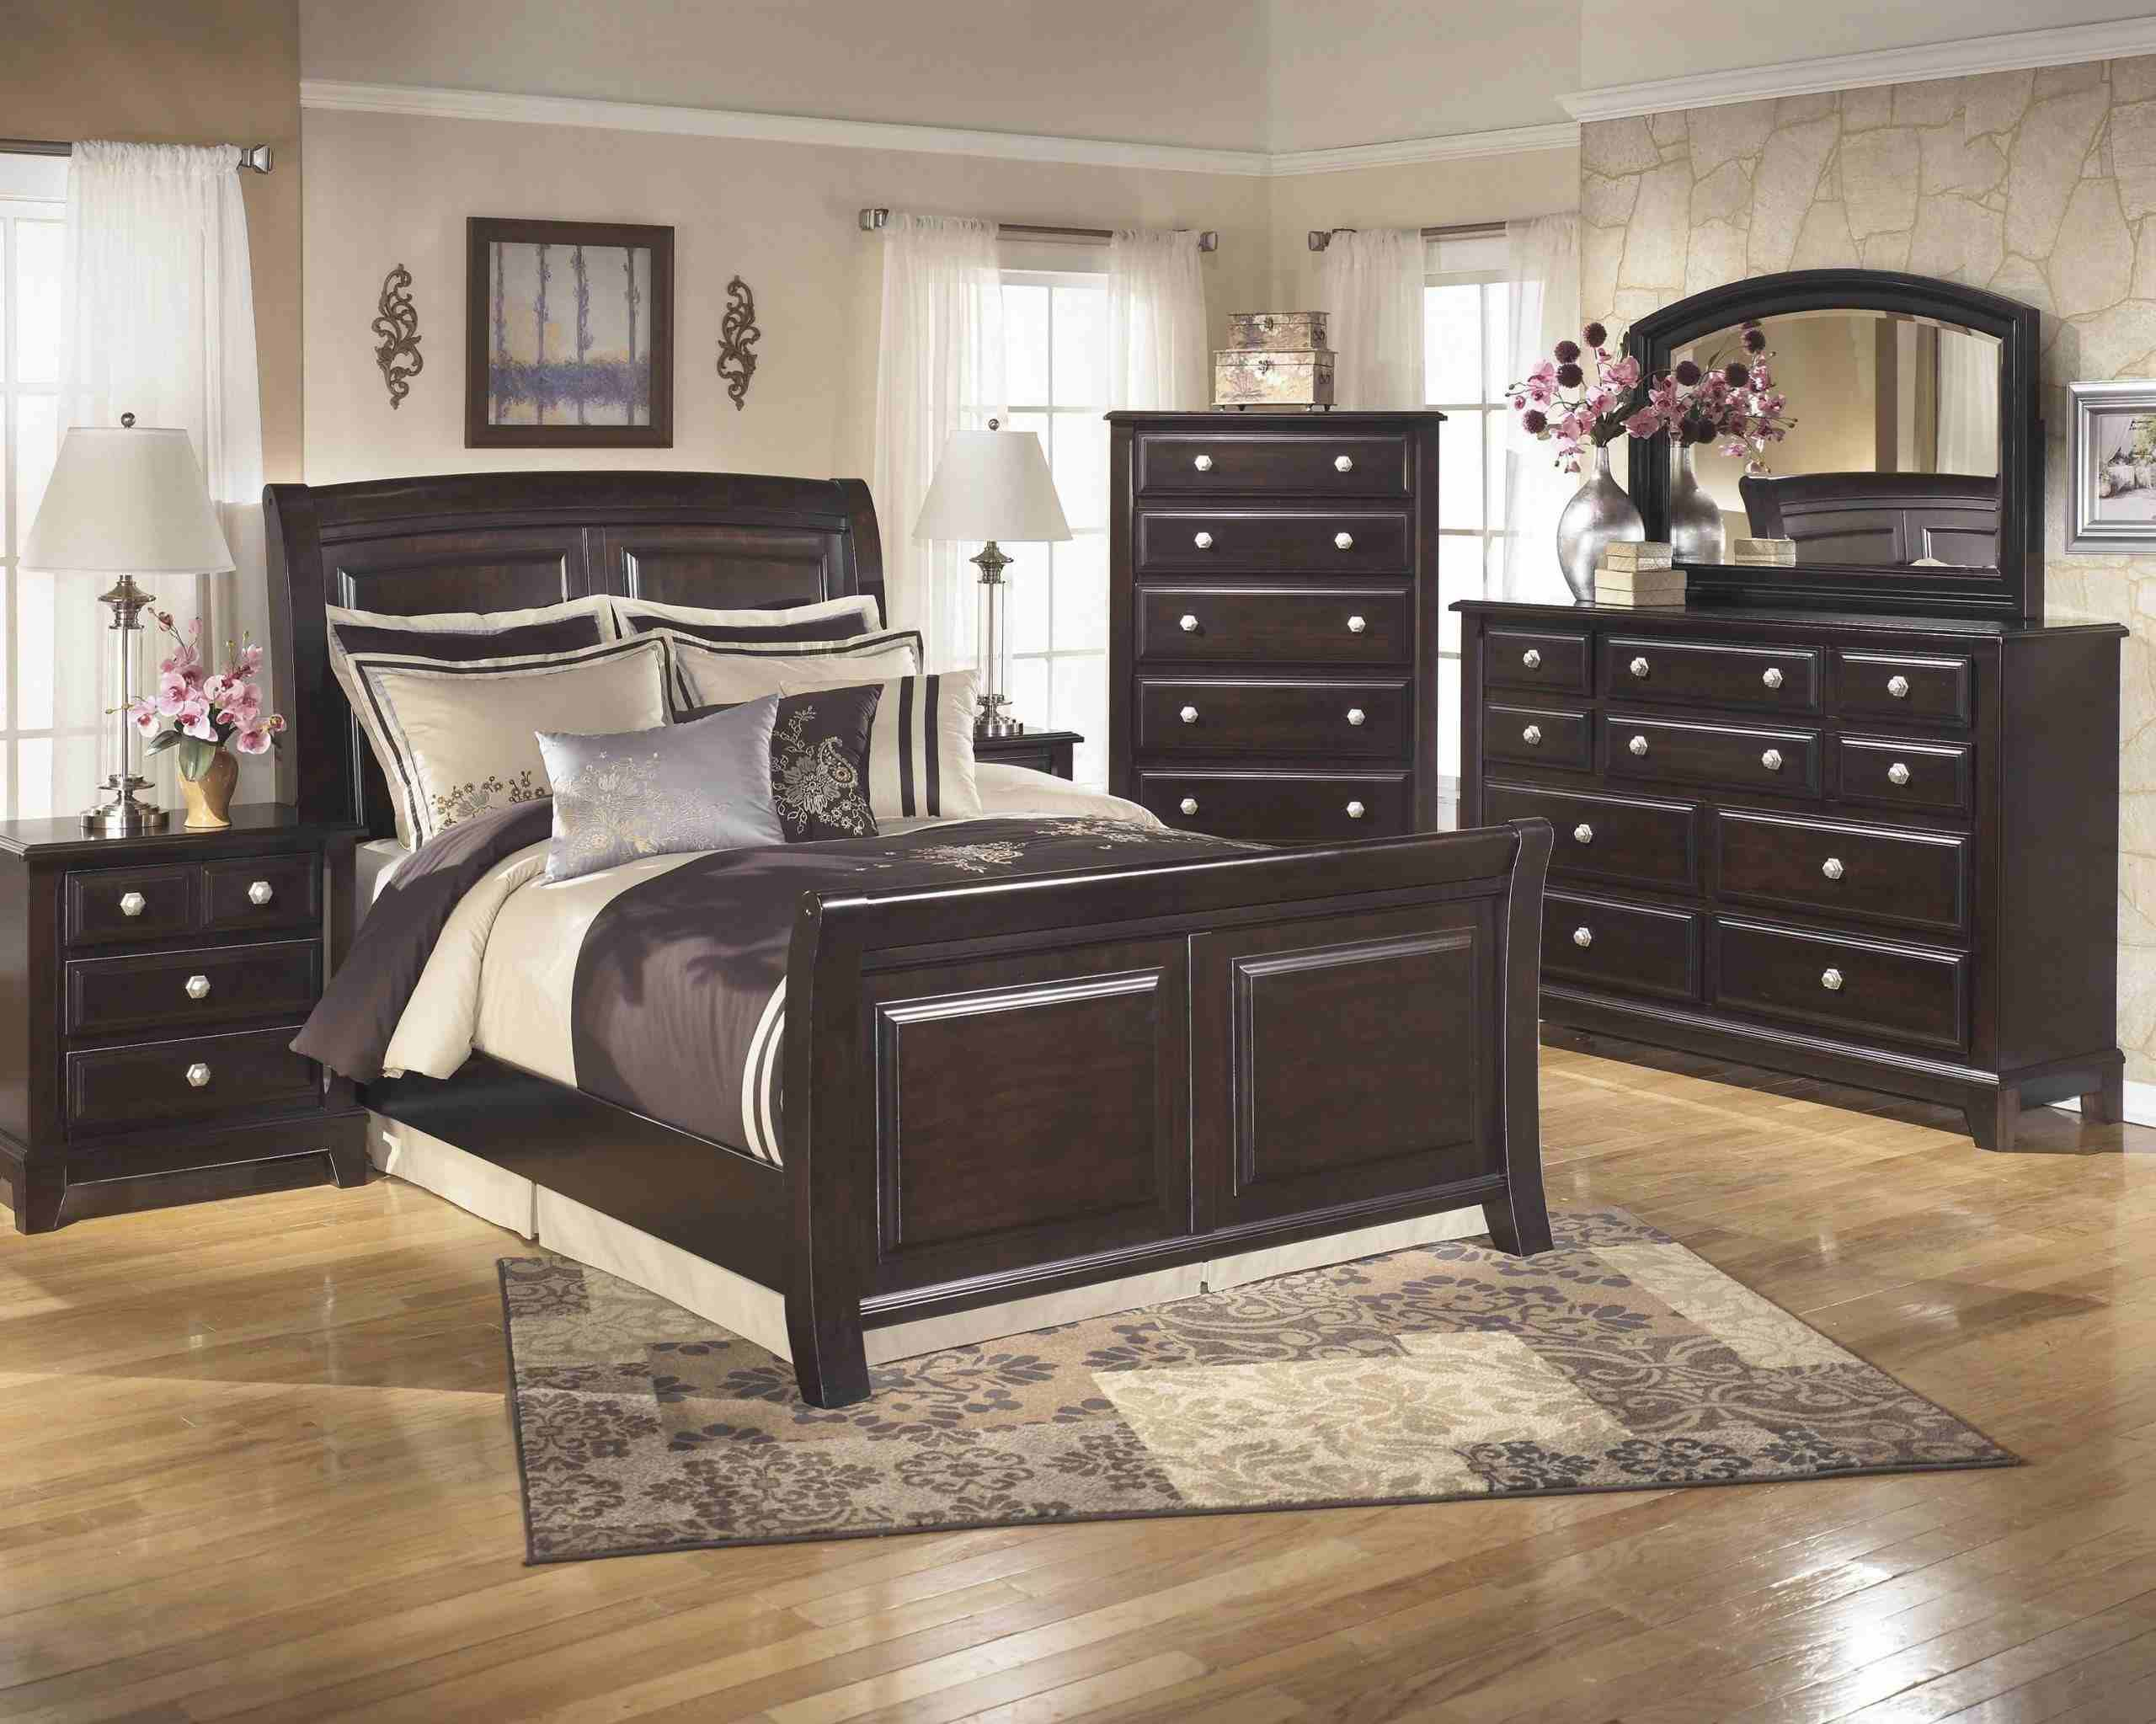 Ashley Furniture Signature Design Bedroom Set In 2020 Cheap